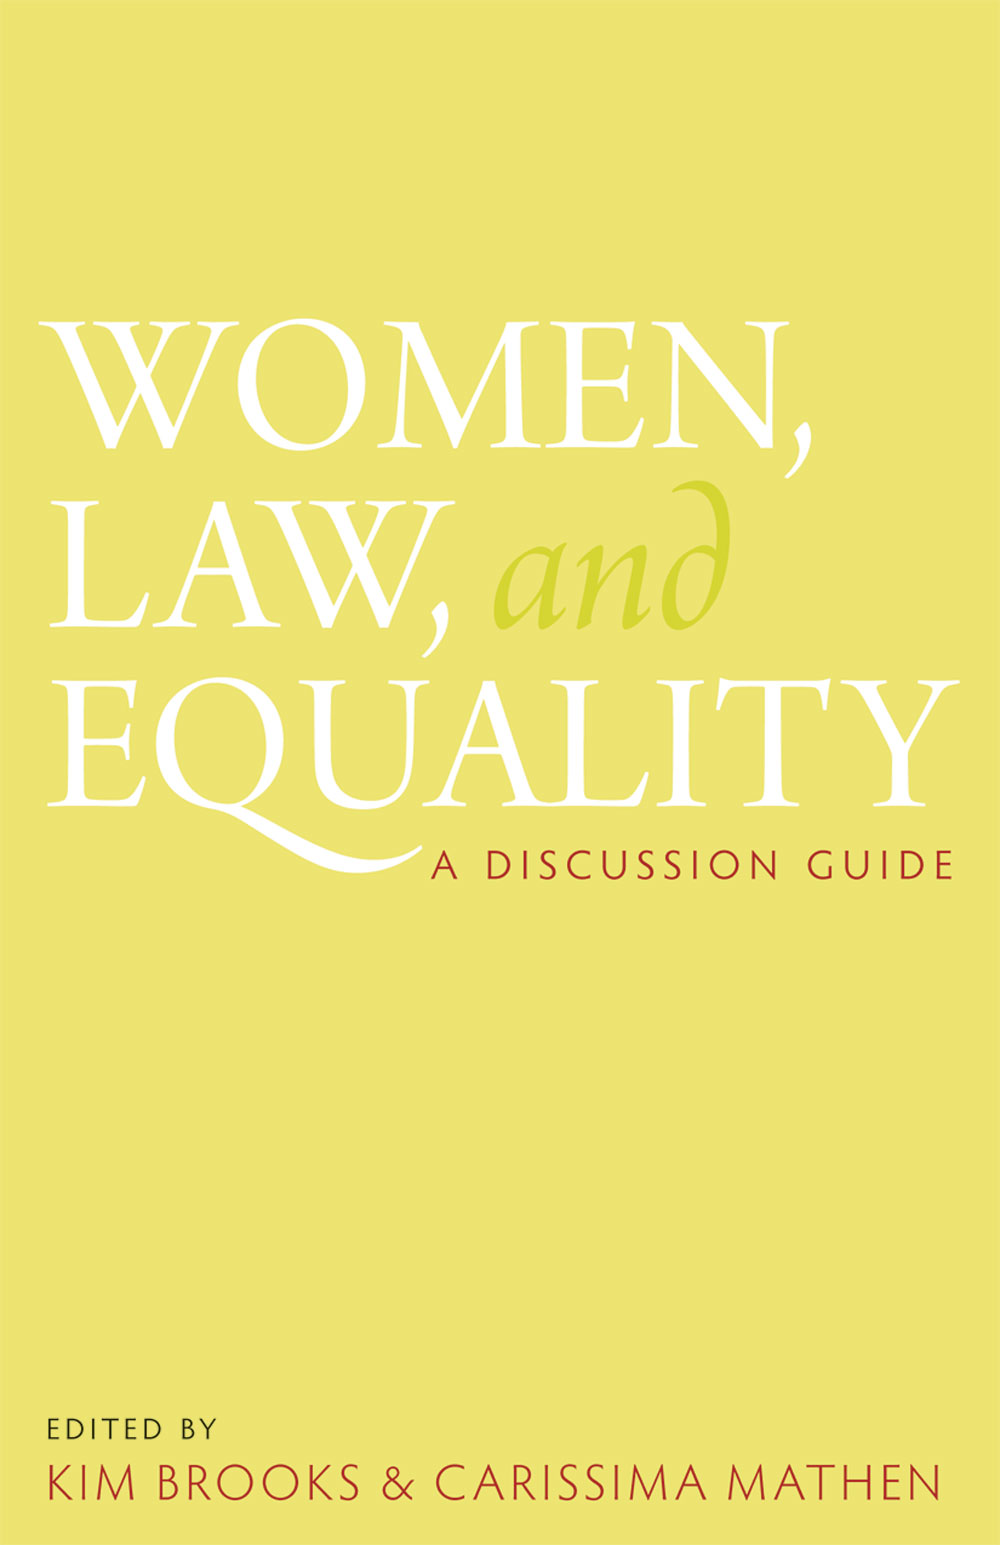 Women, Law and Equality